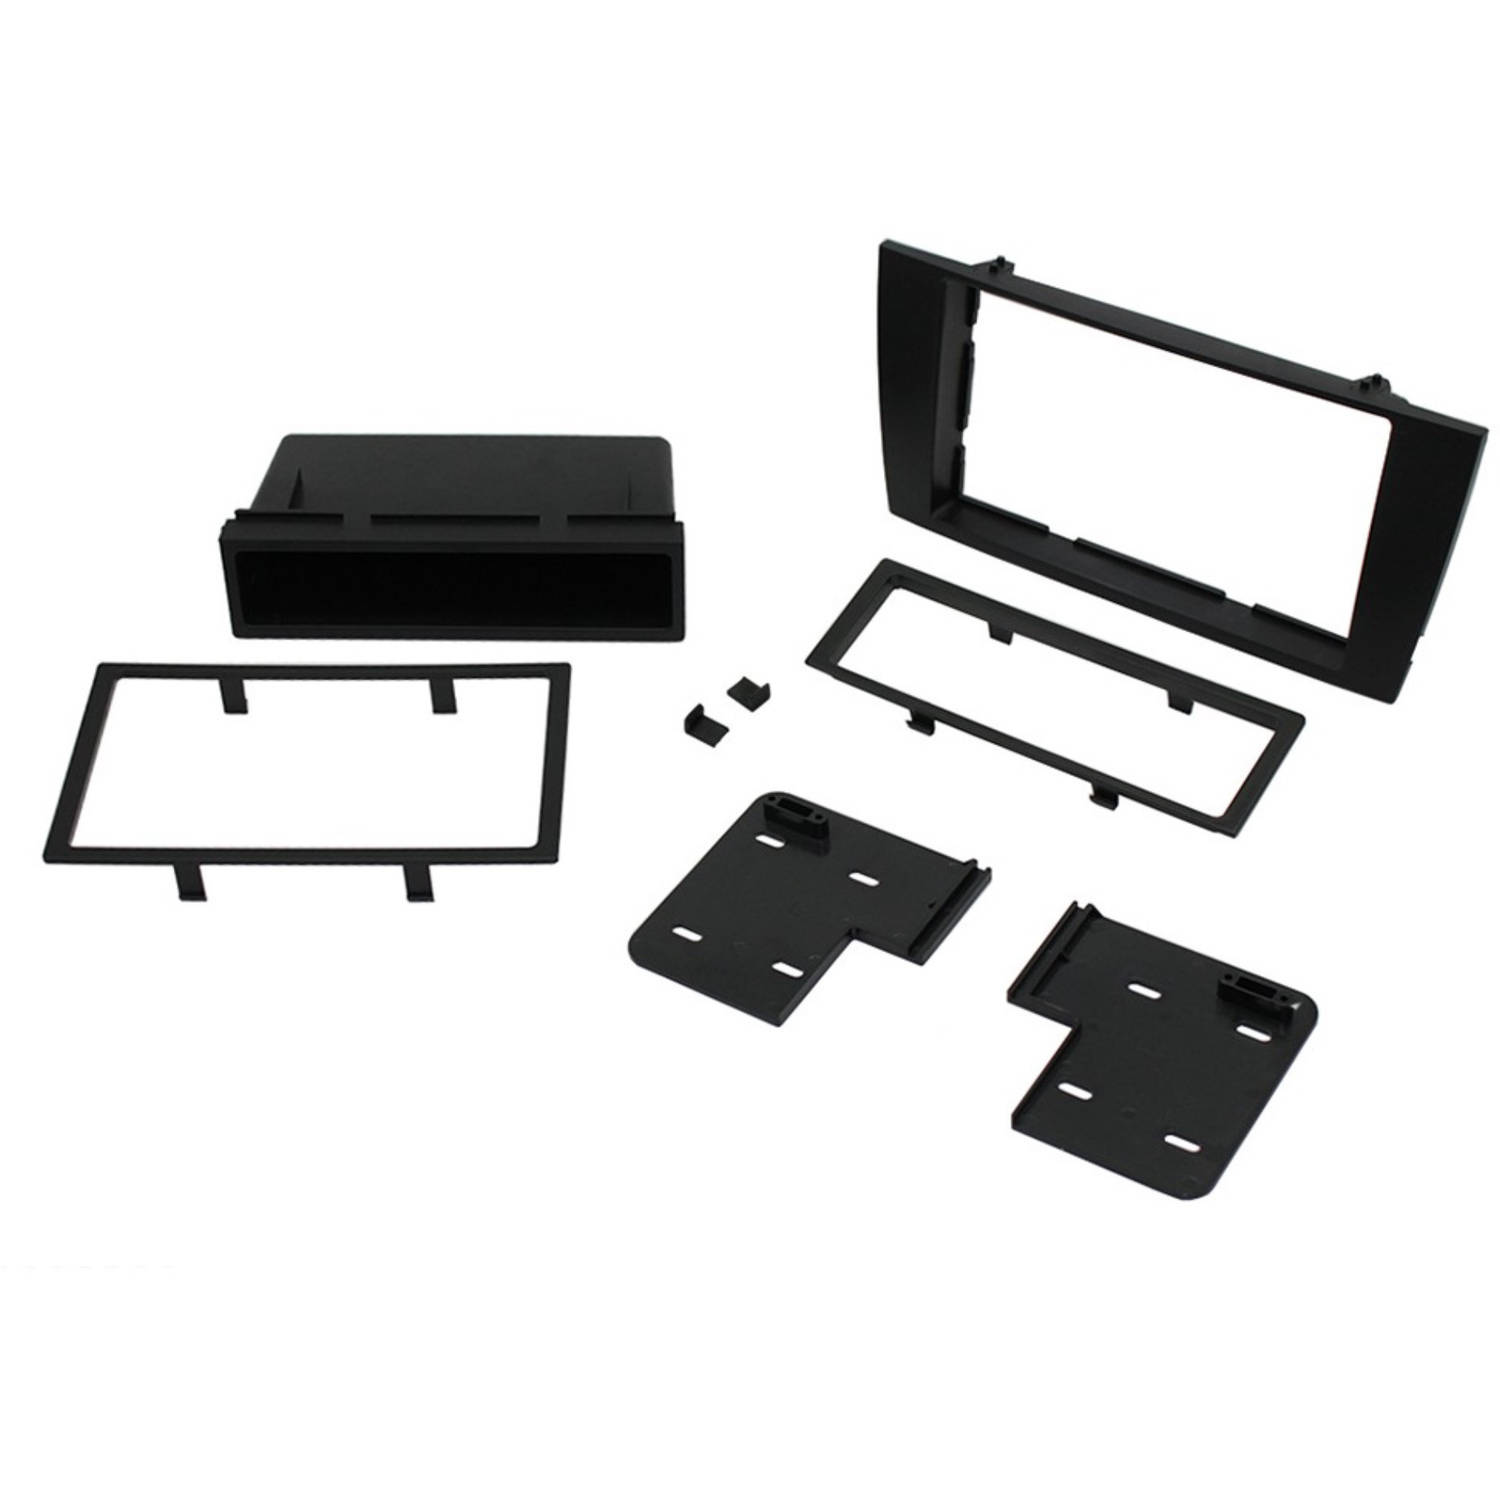 hight resolution of scosche jr8200b 2002 2008 jaguar x type iso double din mounting dash kit for car radio stereo installation black walmart com